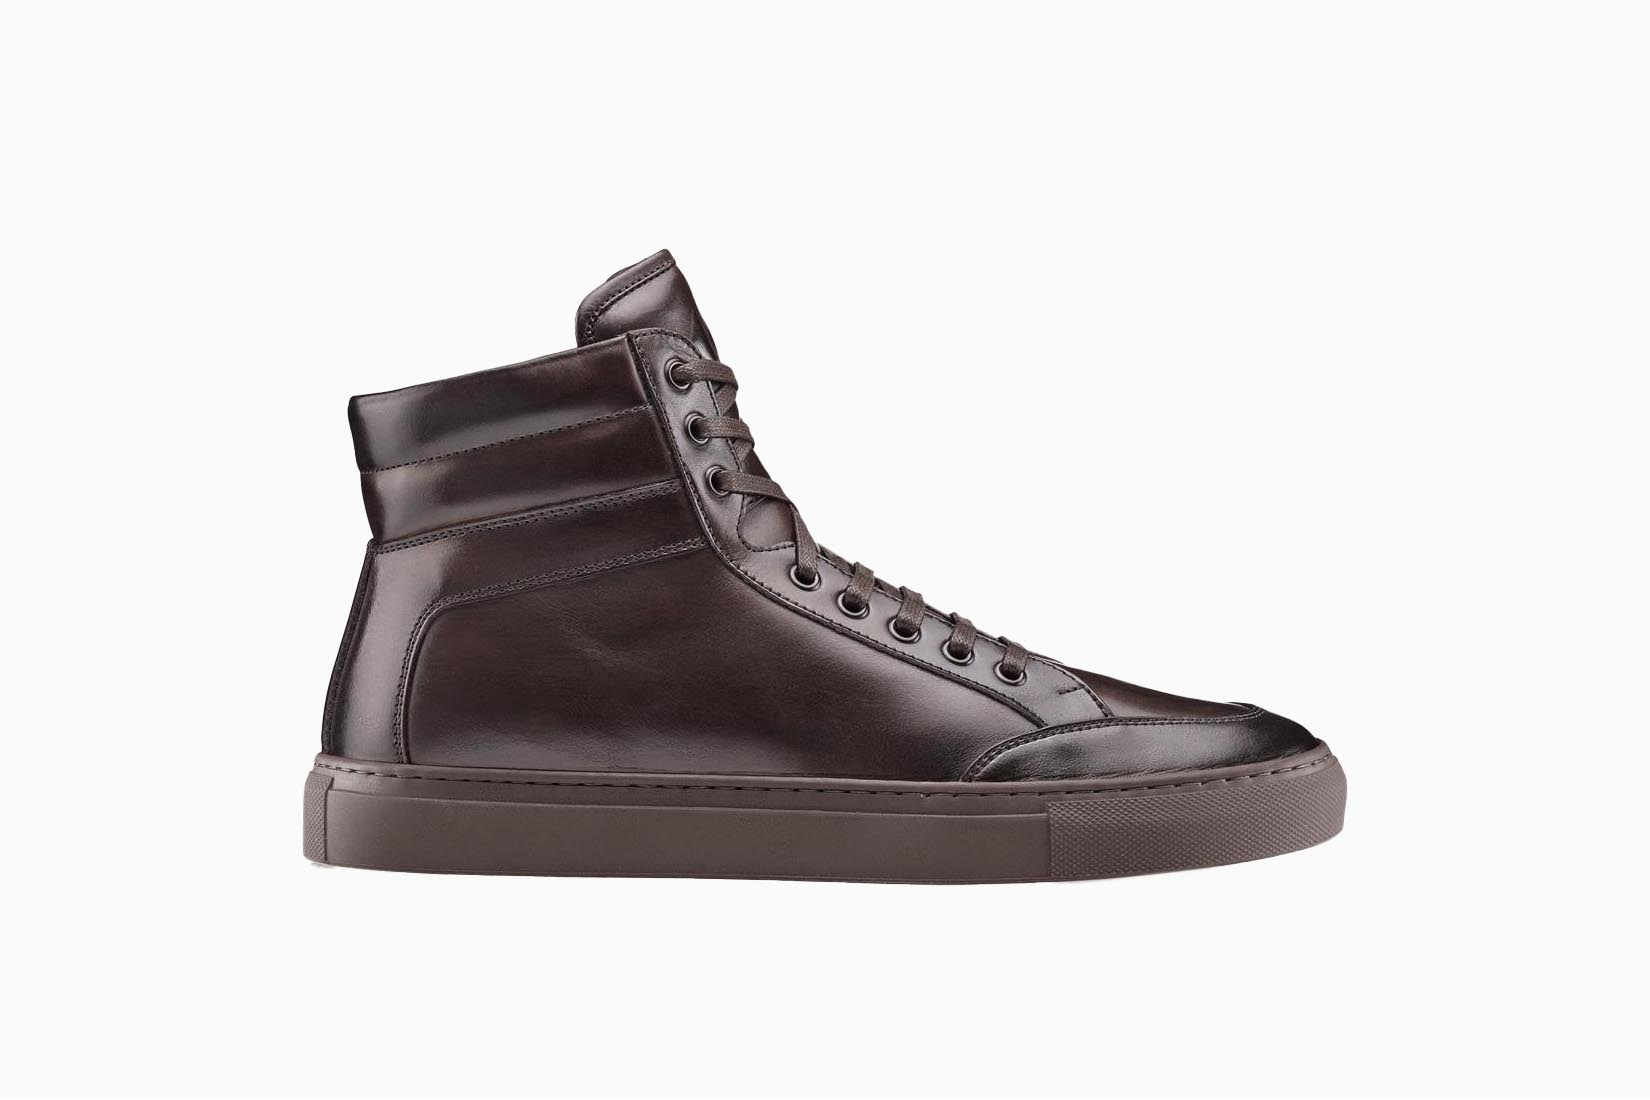 best boots men koio primo high top sneakers review Luxe Digital